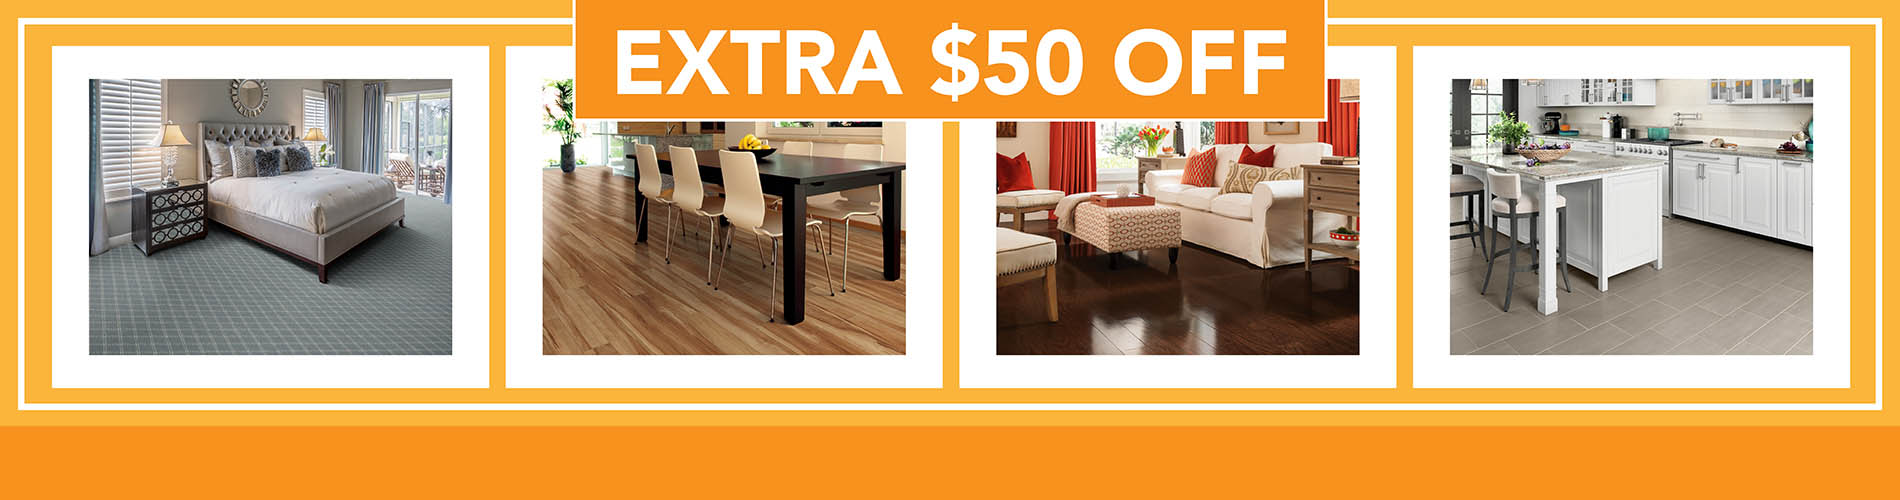 Come in today to save up to $50 off all flooring in our store.  All Carpet, Hardwood, Tile, Luxury Vinyl, Laminate, and Waterproof Flooring